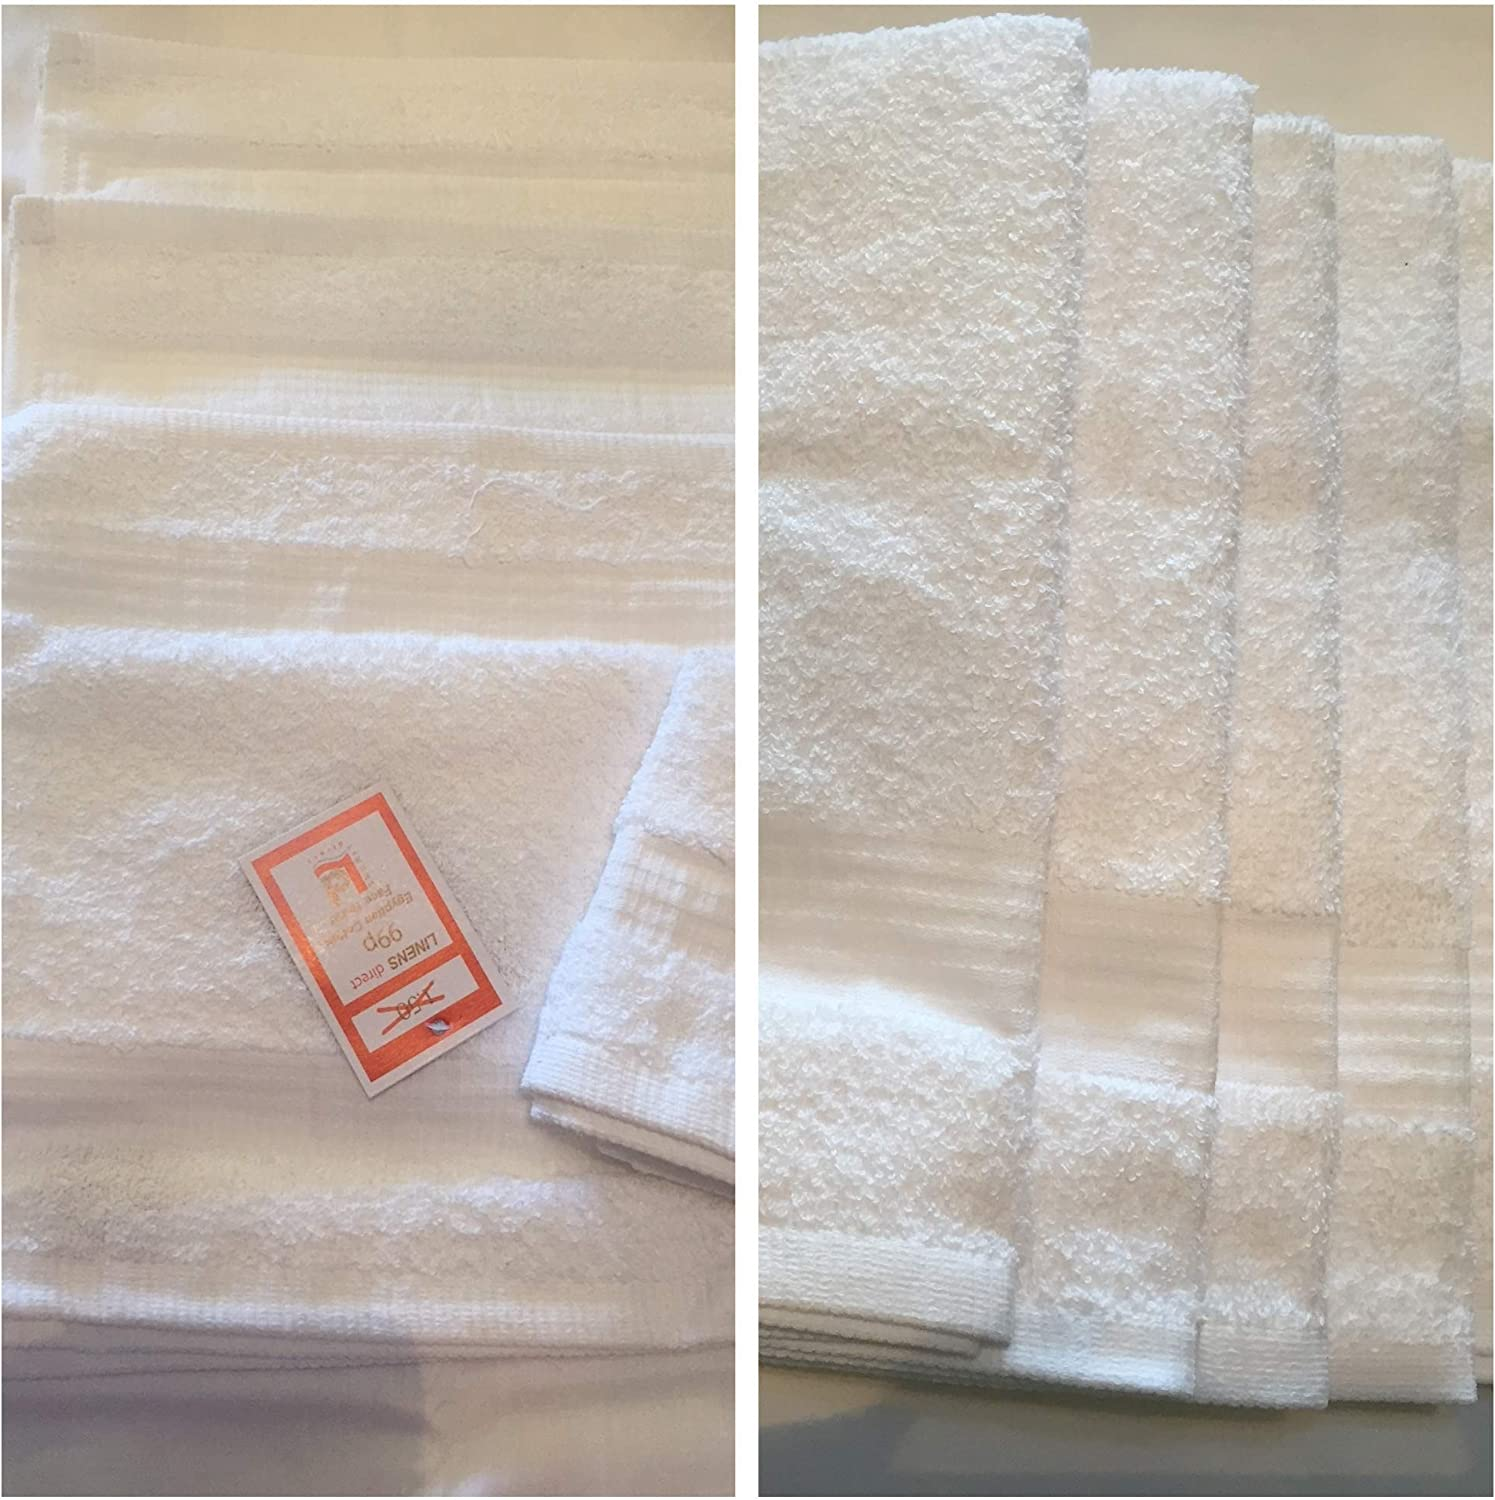 Bedding Heaven/® Egyptian Cotton 4 x GUEST TOWELS /& 2 x FACE CLOTHS 400gsm by Linens Direct White